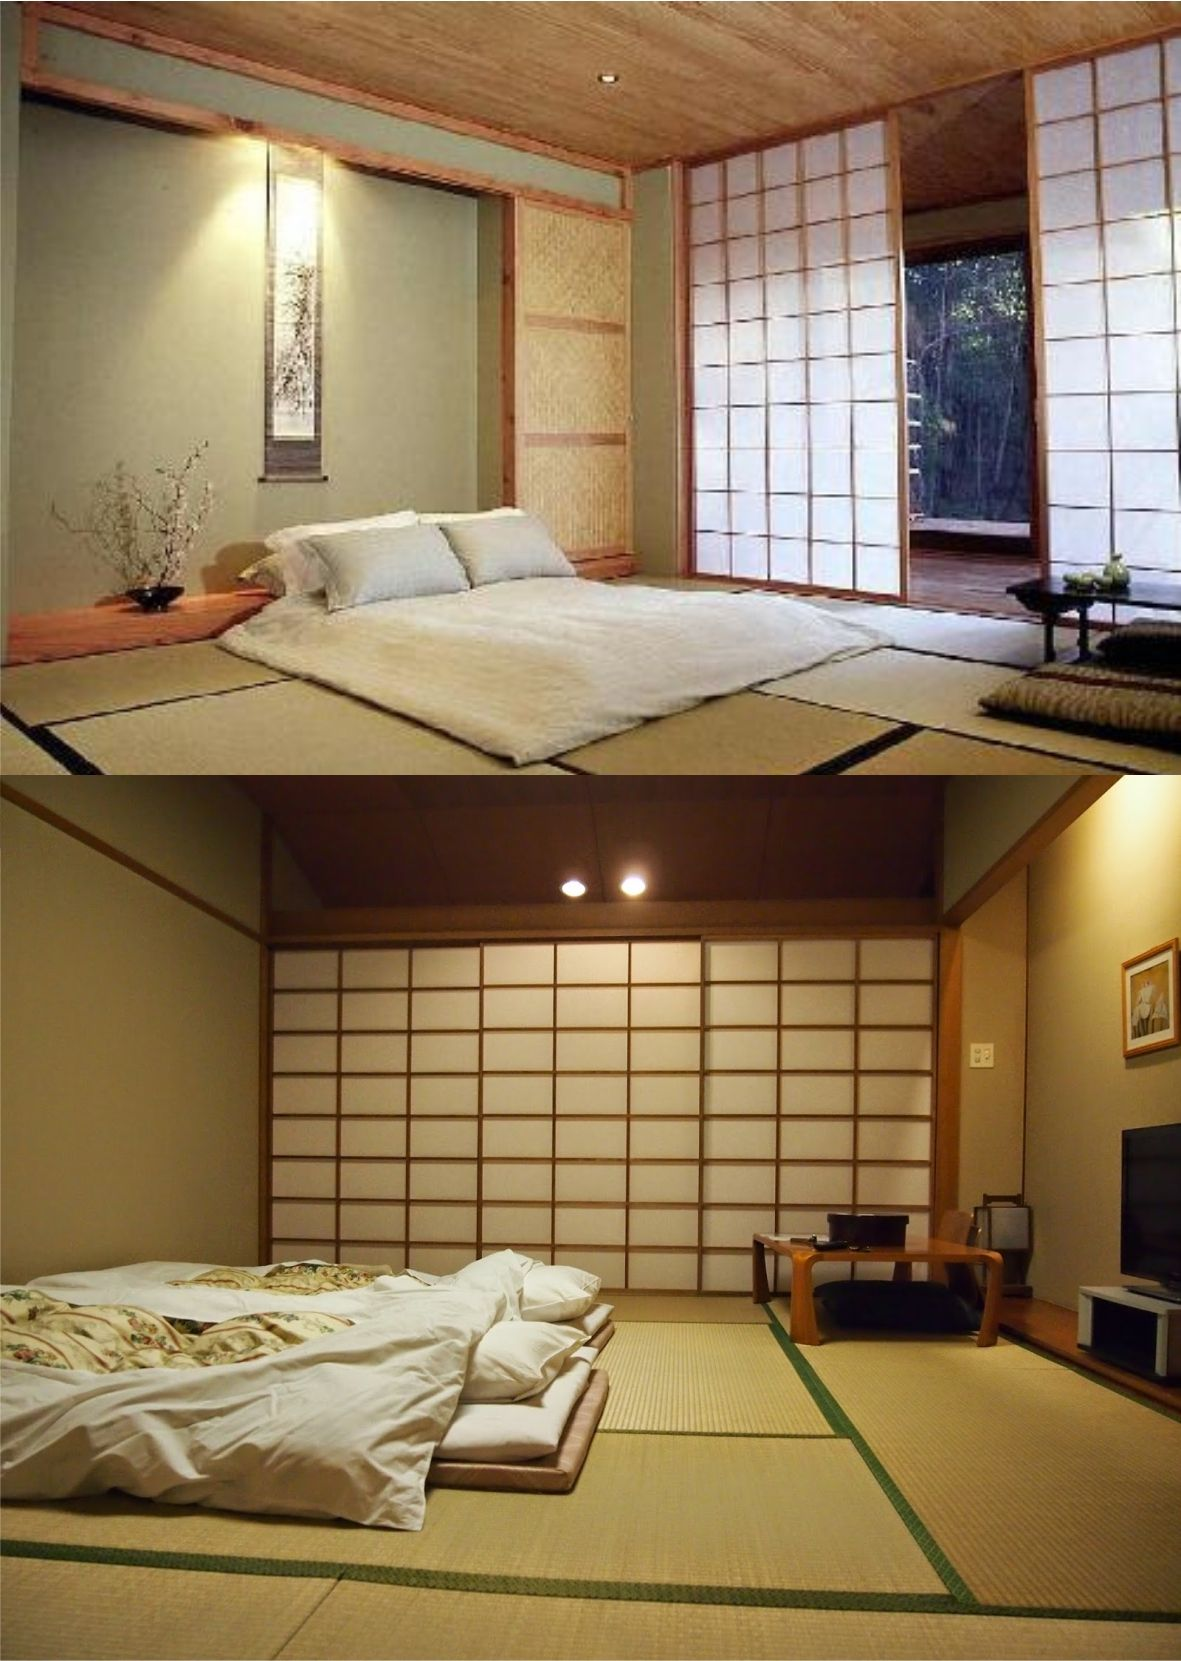 The Minimalistic Japanese Bedroom Style Is Currently Obtaining